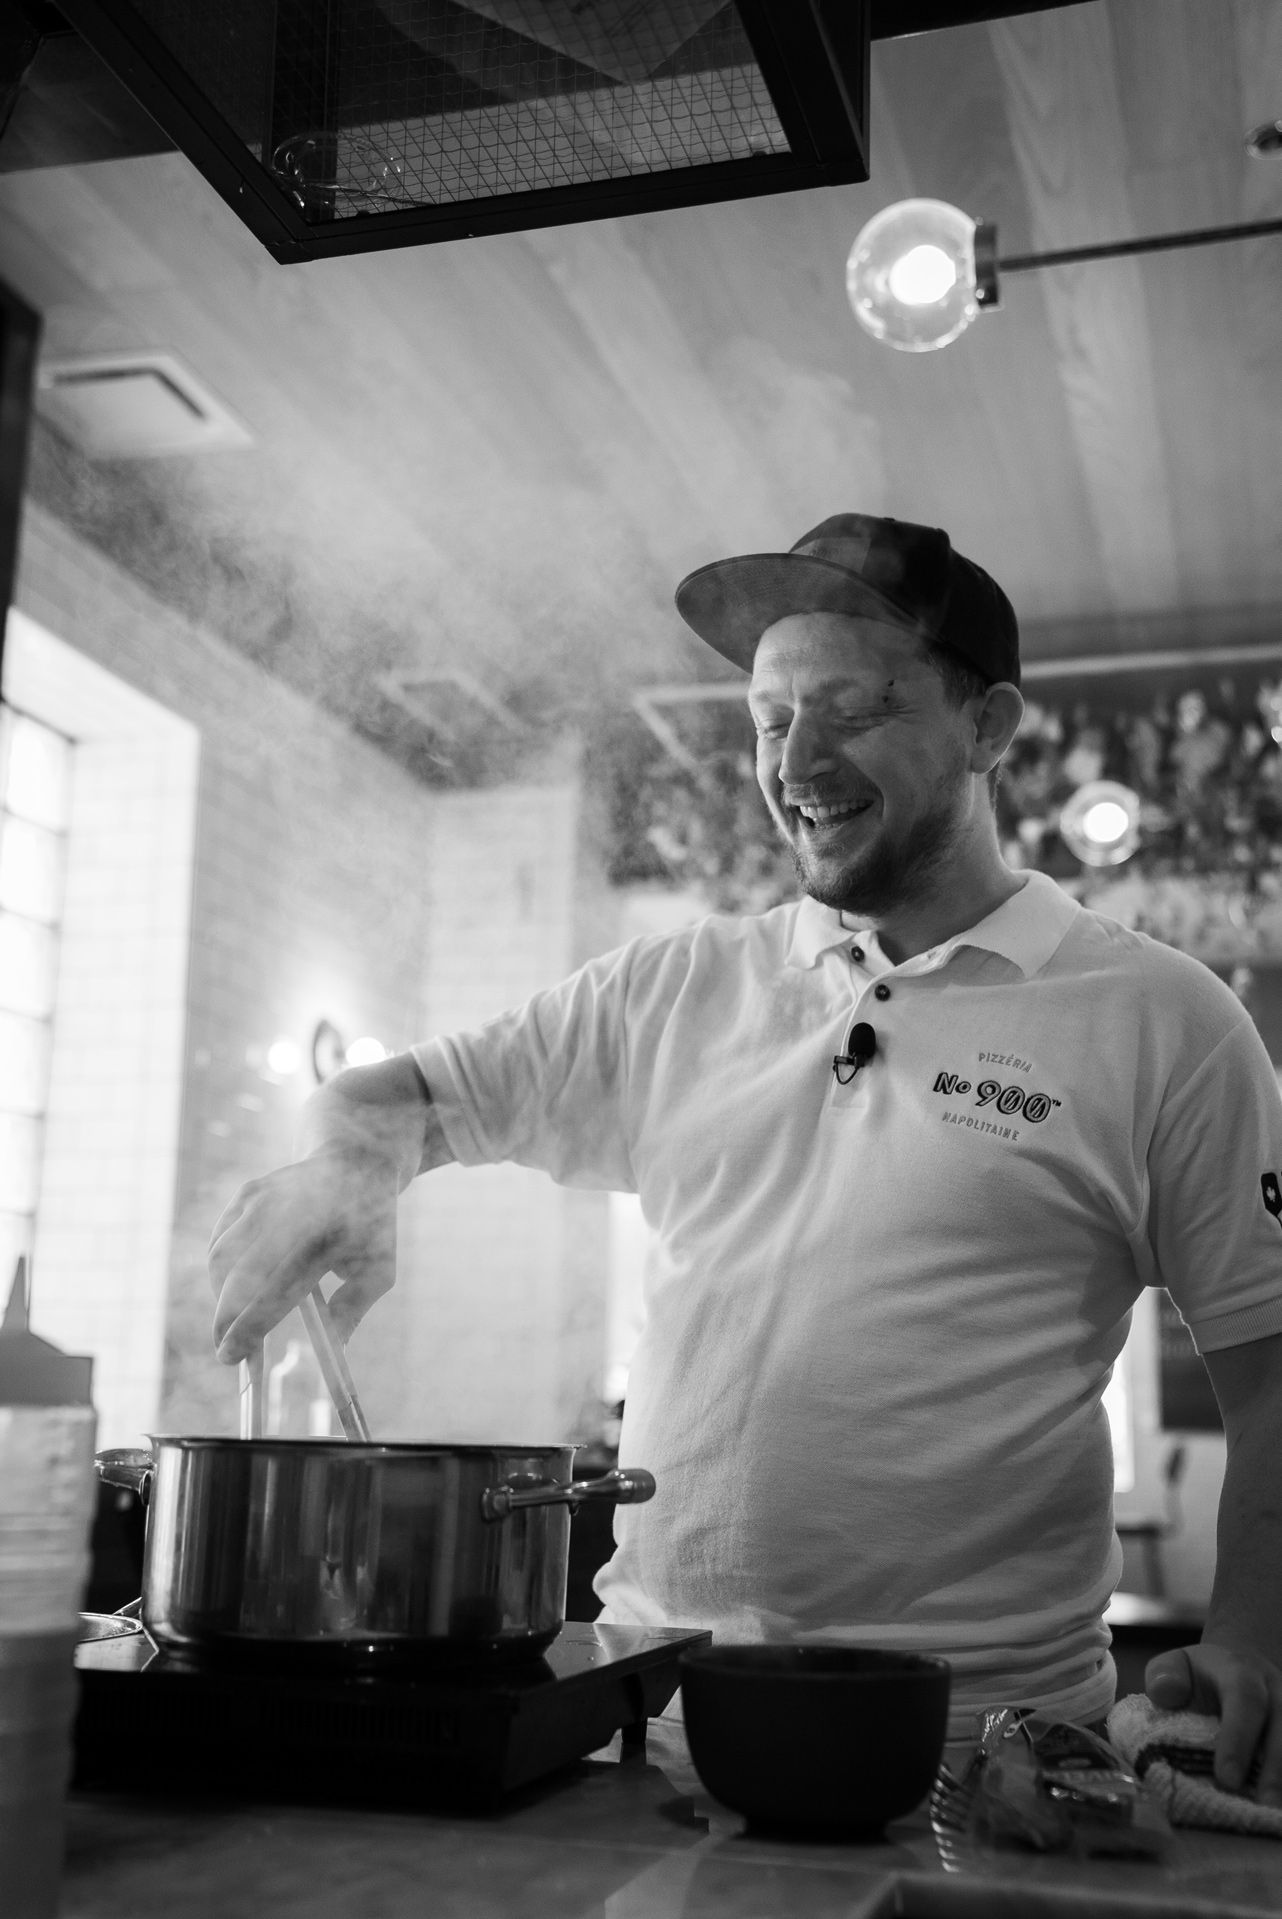 portrait of chef Mirko D'Agata owner of No 900n pizzerias cooking by Bruno Florin